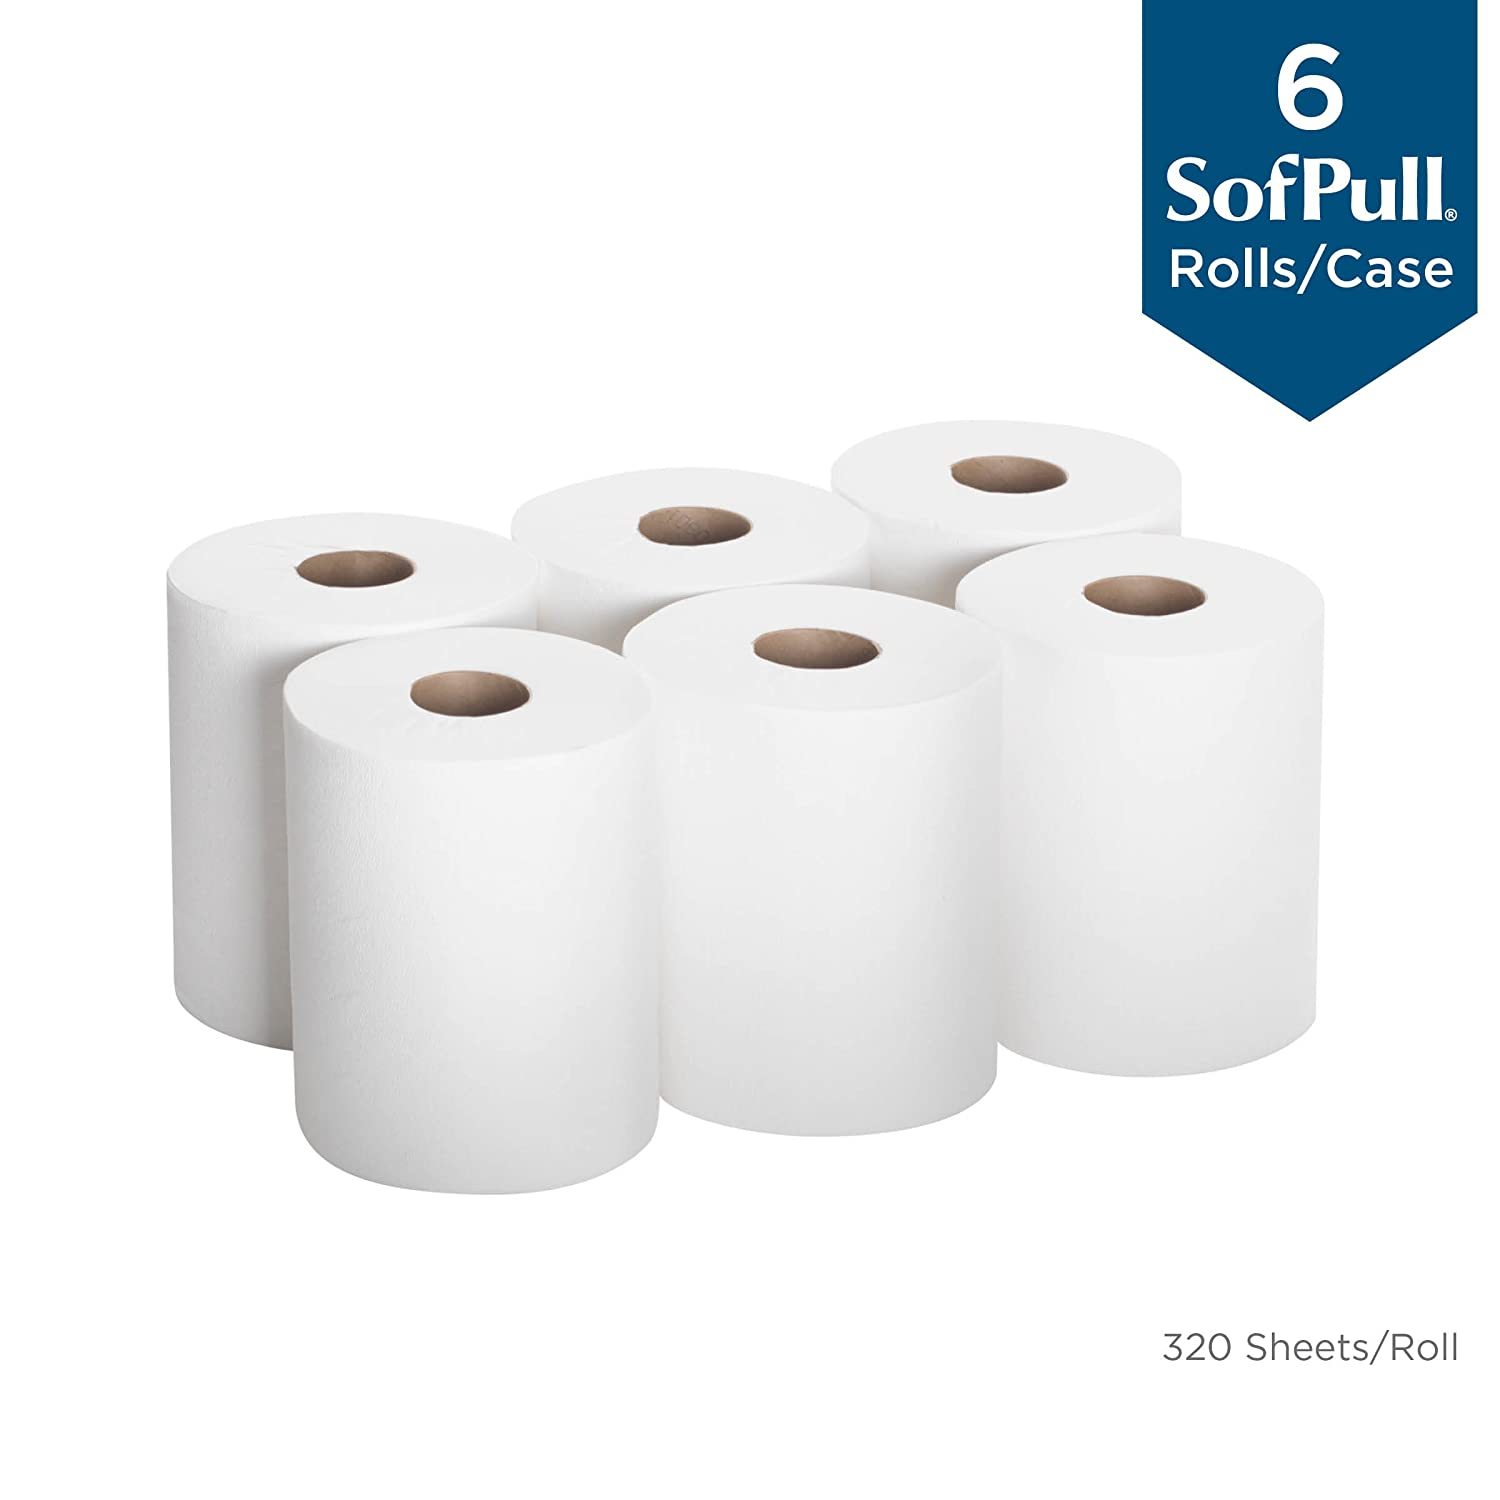 275 Sheets Per Roll SofPull Centerpull Junior Capacity Paper Towels by GP PRO 8 Rolls Per Case COUGEP28125 Georgia-Pacific White 28125